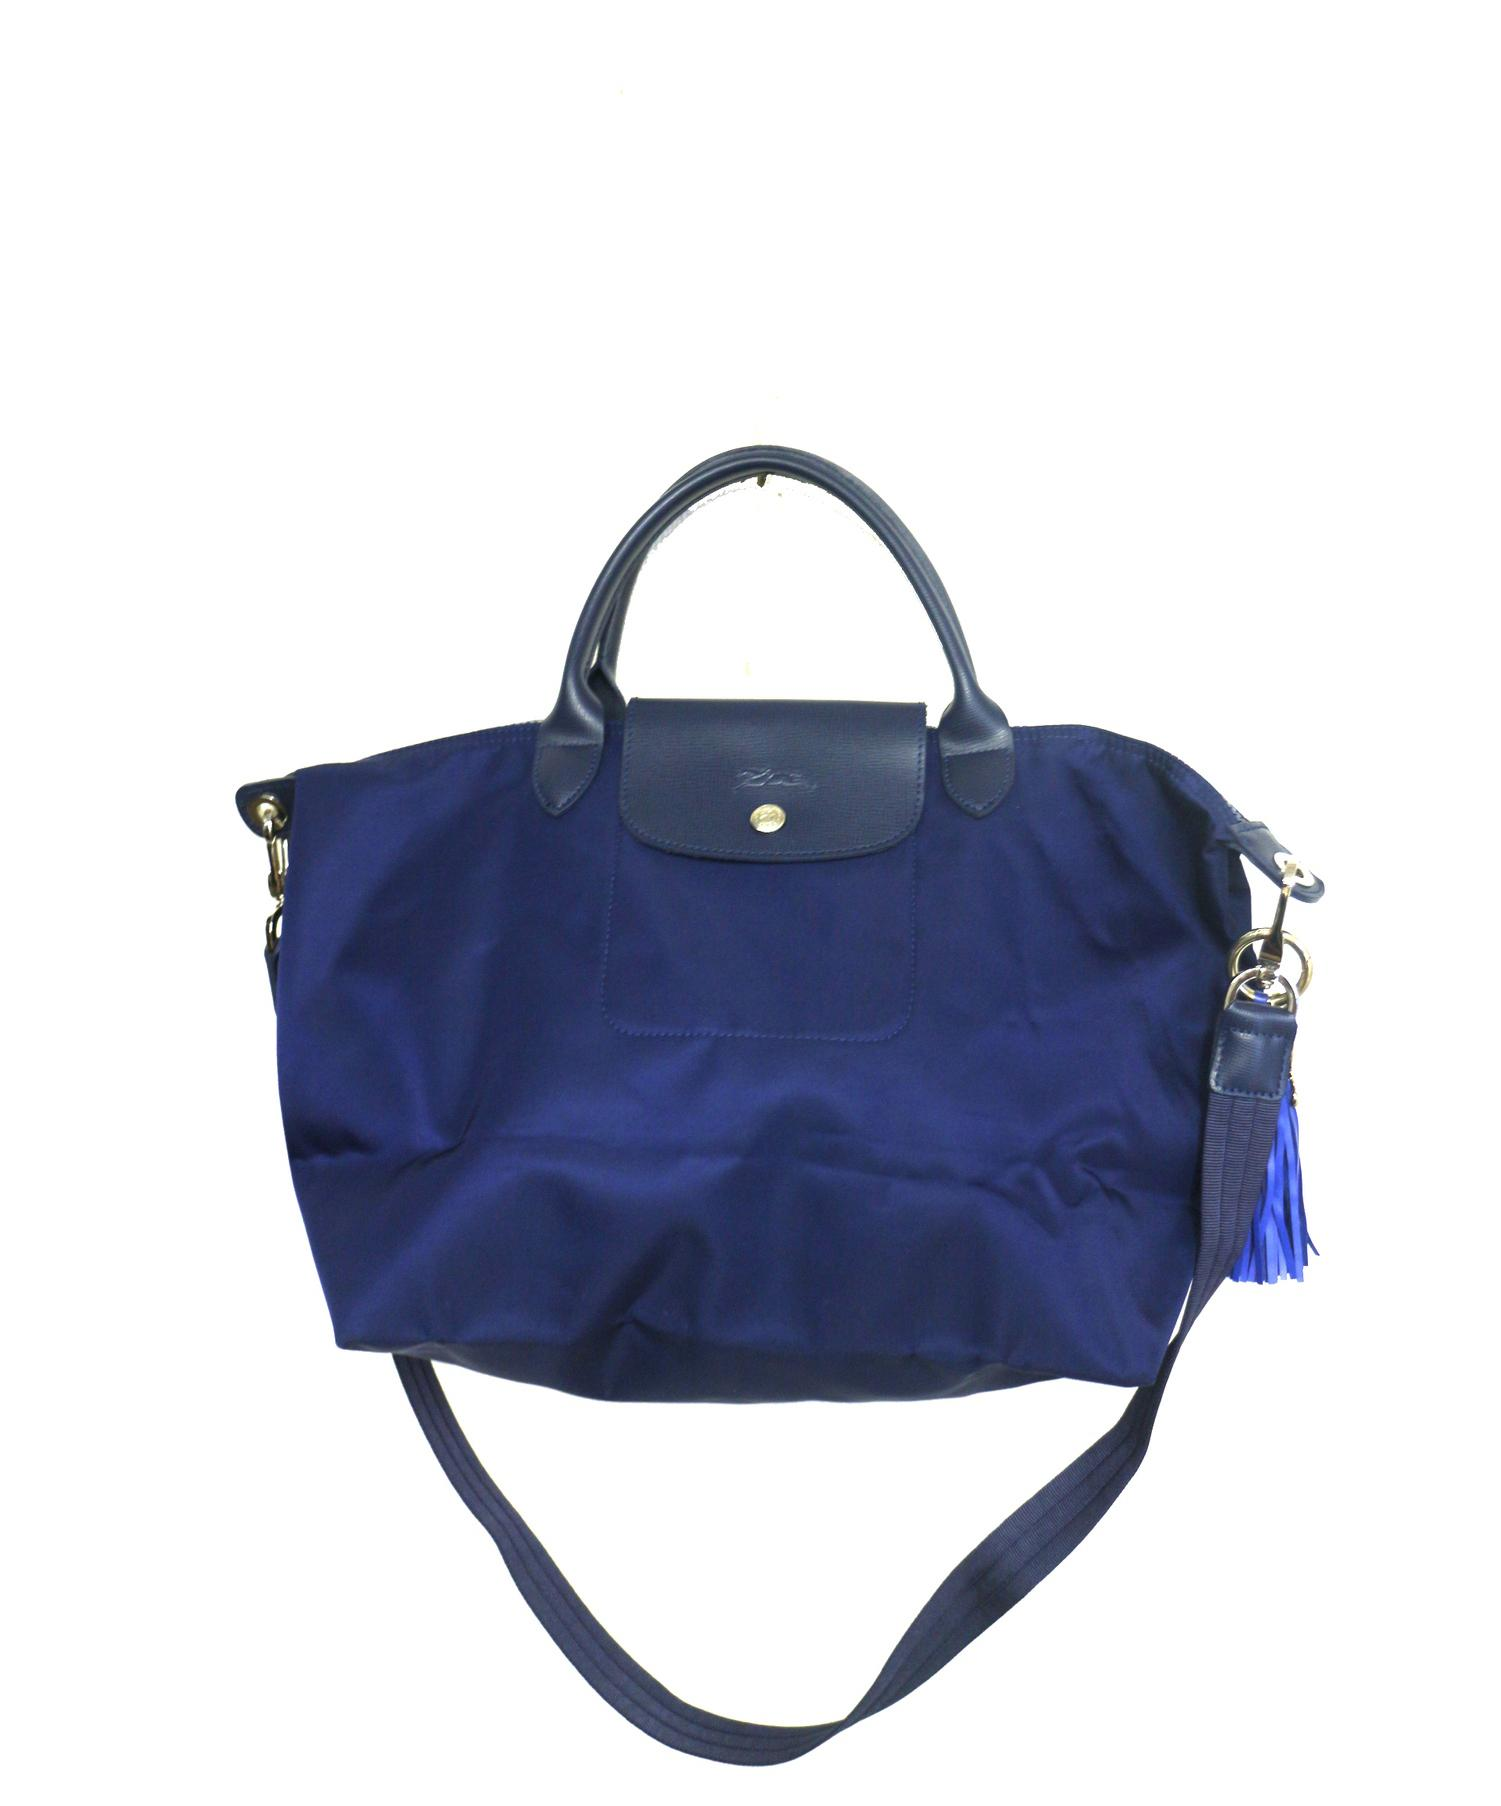 a452d0fb19ee 中古・古着通販】LONGCHAMP (ロンシャン) ル プリアージュハンドバッグ ...